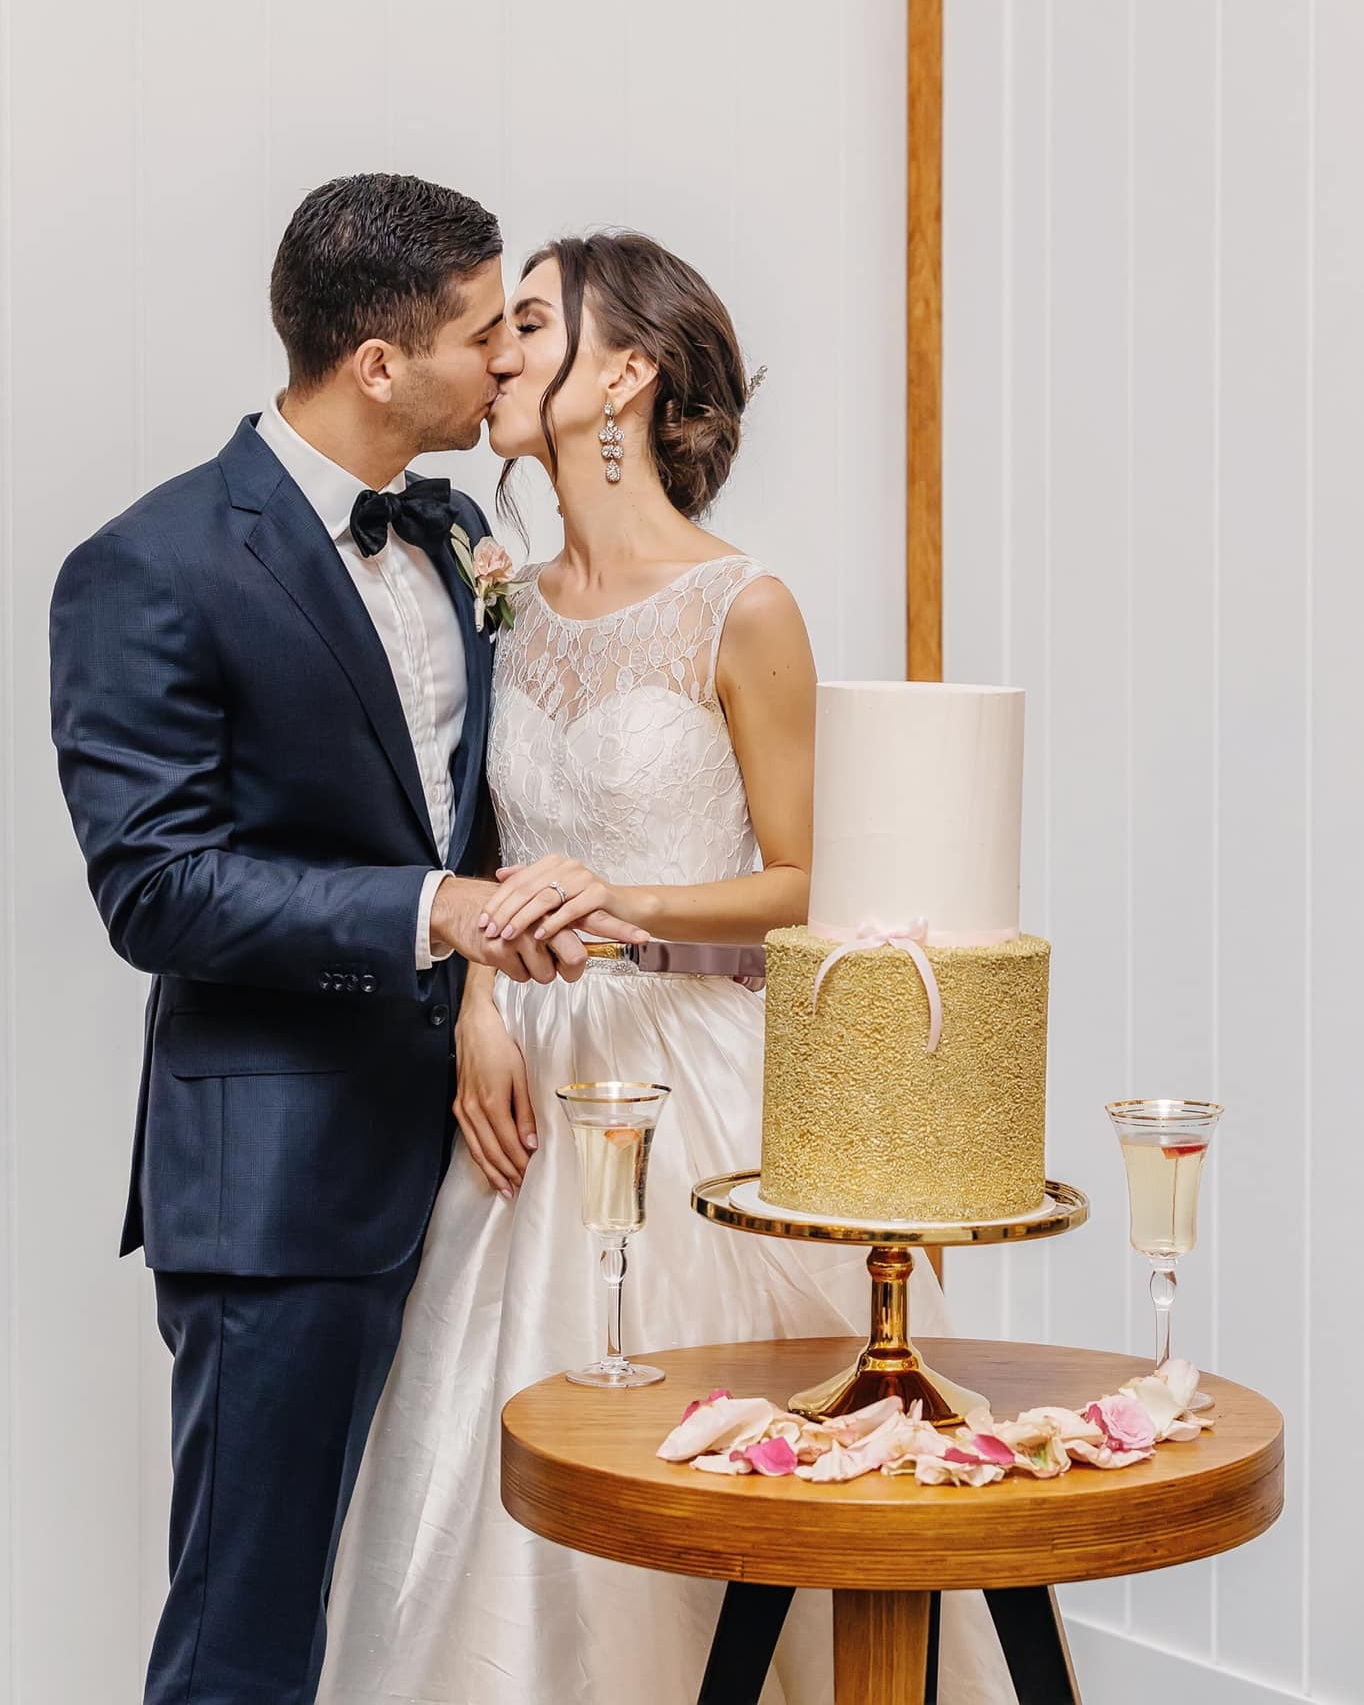 Leisa M - Bec at the team at P+P created our dream wedding + engagement cakes.She made our cake selection an easy process with prompt communication and excellent attention to detail. They not only looked beautiful but also tasted incredible.Thank you!